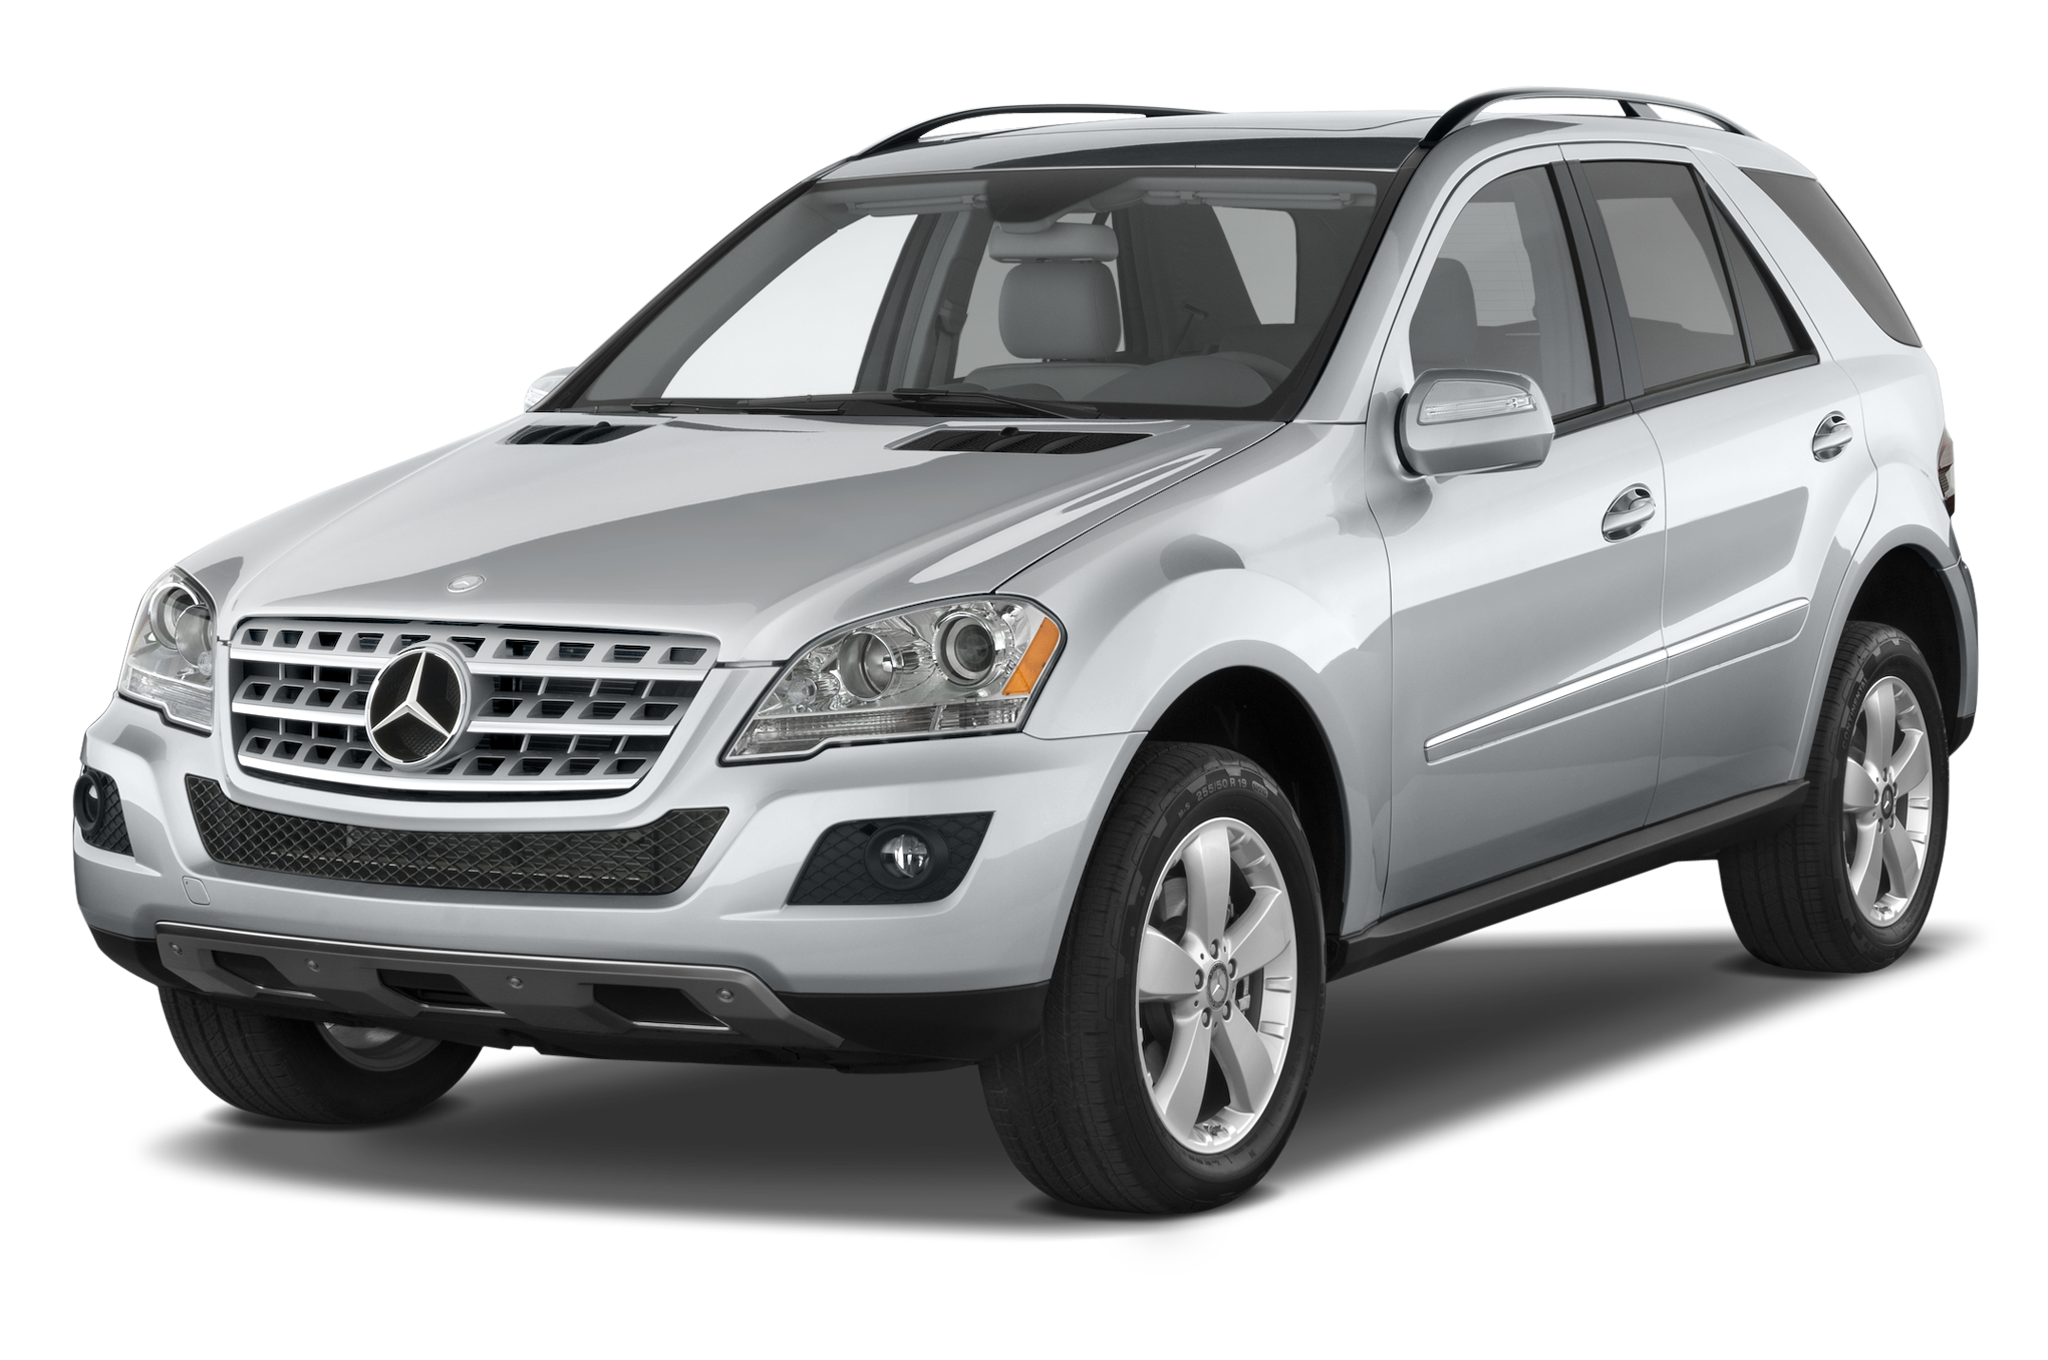 2010 mercedes benz ml450 hybrid 4matic launches today for for Mercedes benz ml450 hybrid